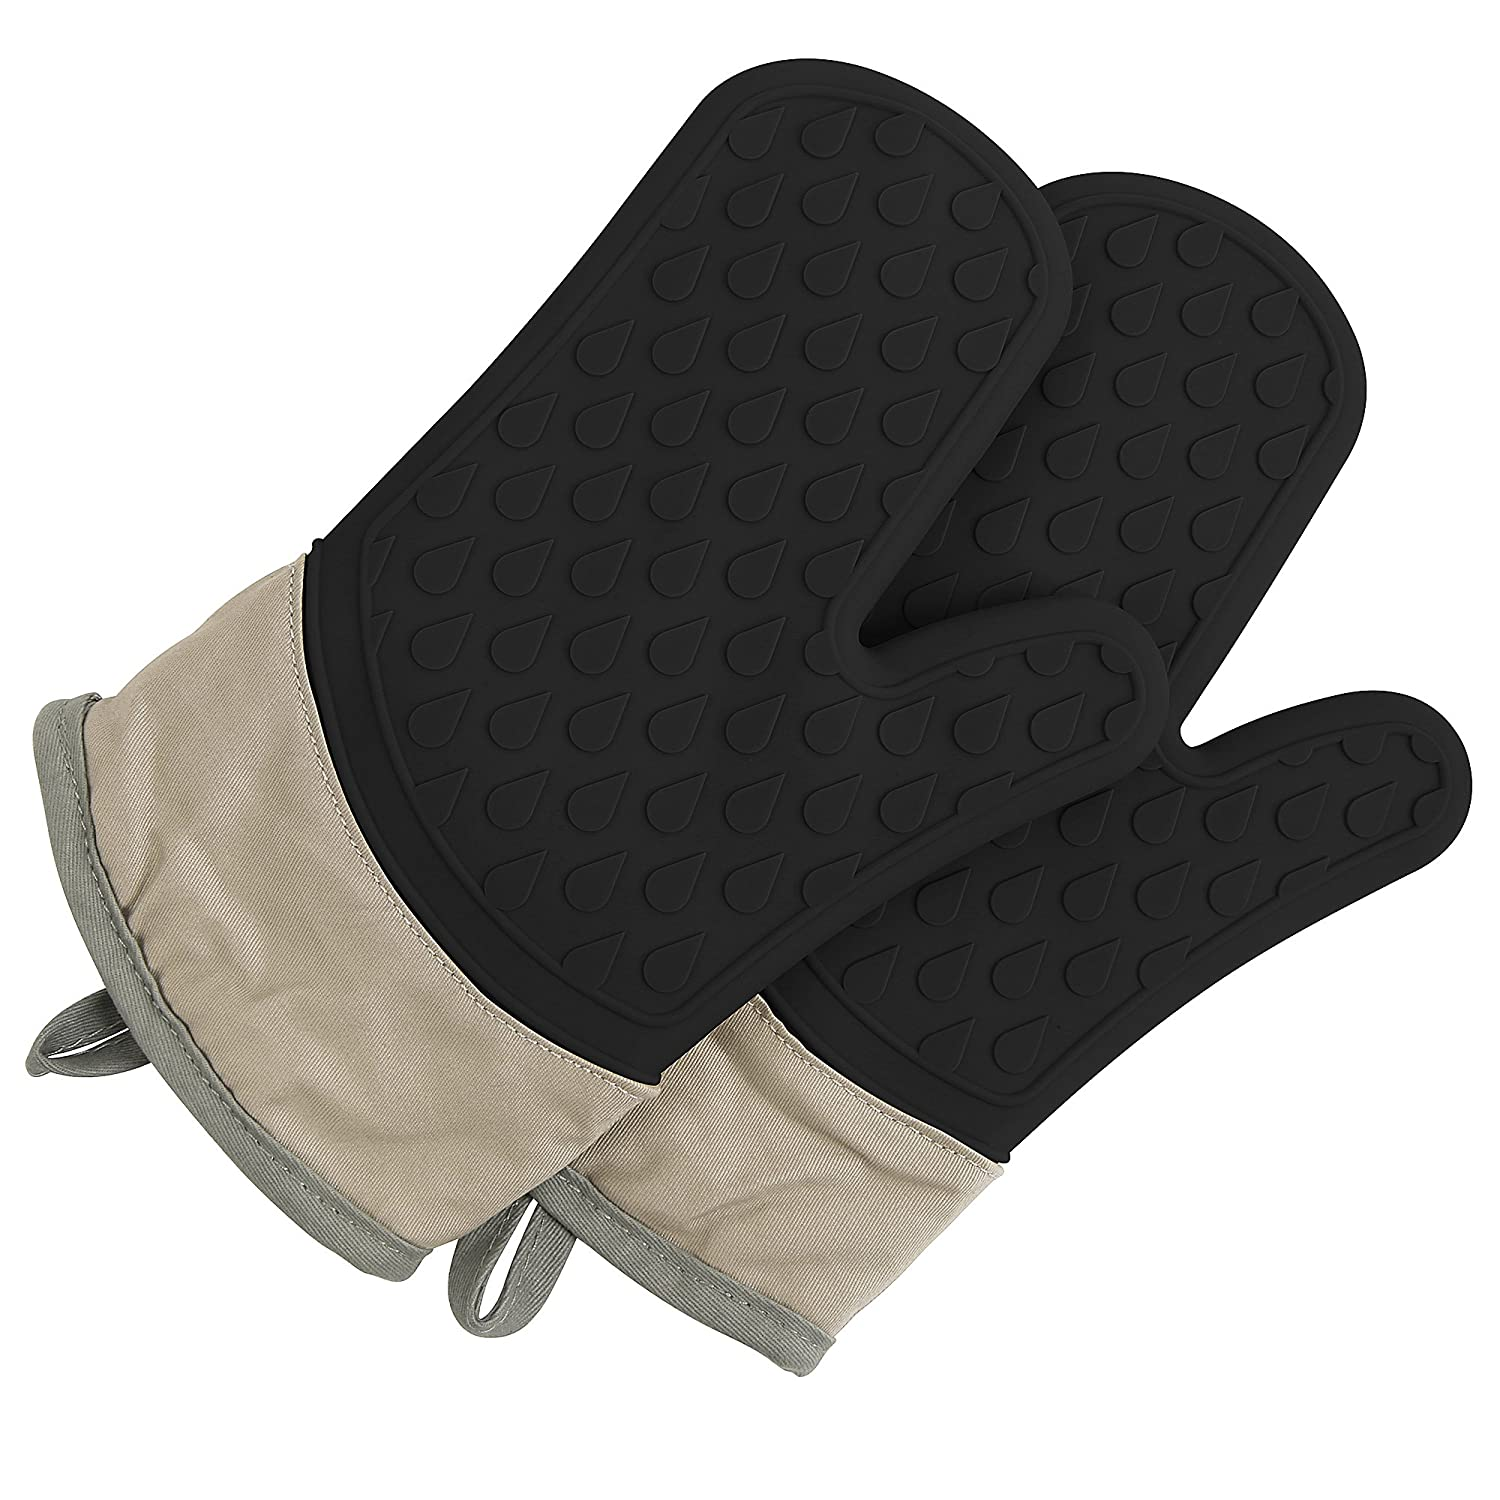 TOPHOME Oven Mitts Grilling Gloves Heat Resistant Gloves BBQ Kitchen Silicone Oven Mitts Long Waterproof Non-Slip Potholder for Barbecue Cooking Baking BBQ Gloves Black TH-CSuna-NB